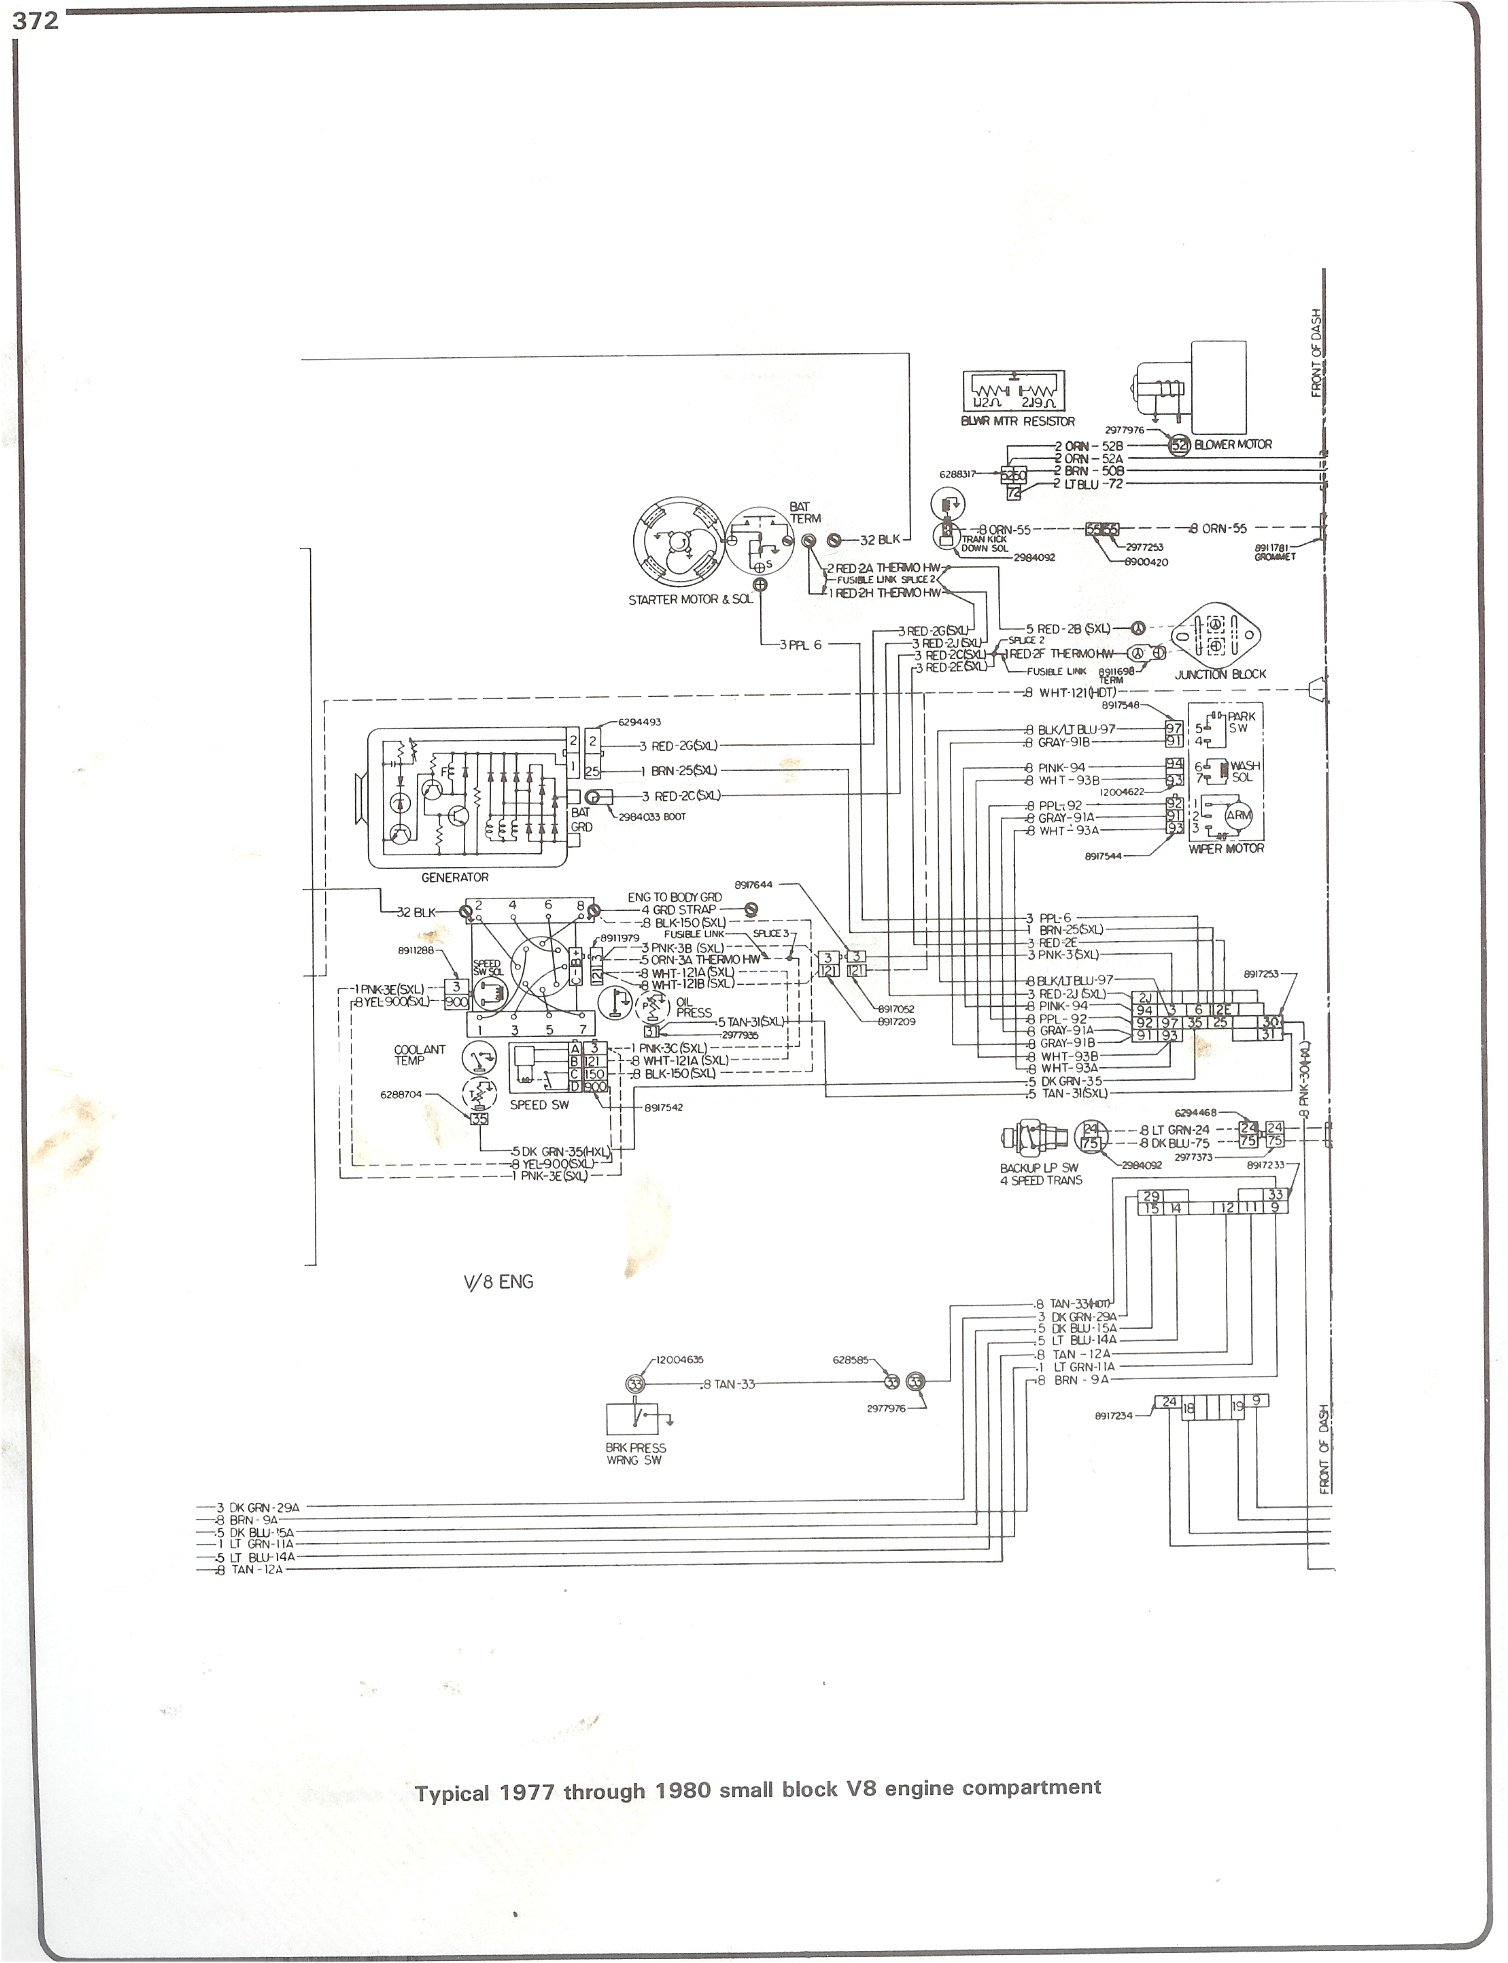 [WRG-6786] 1979 Chevy K10 Wiring Diagram